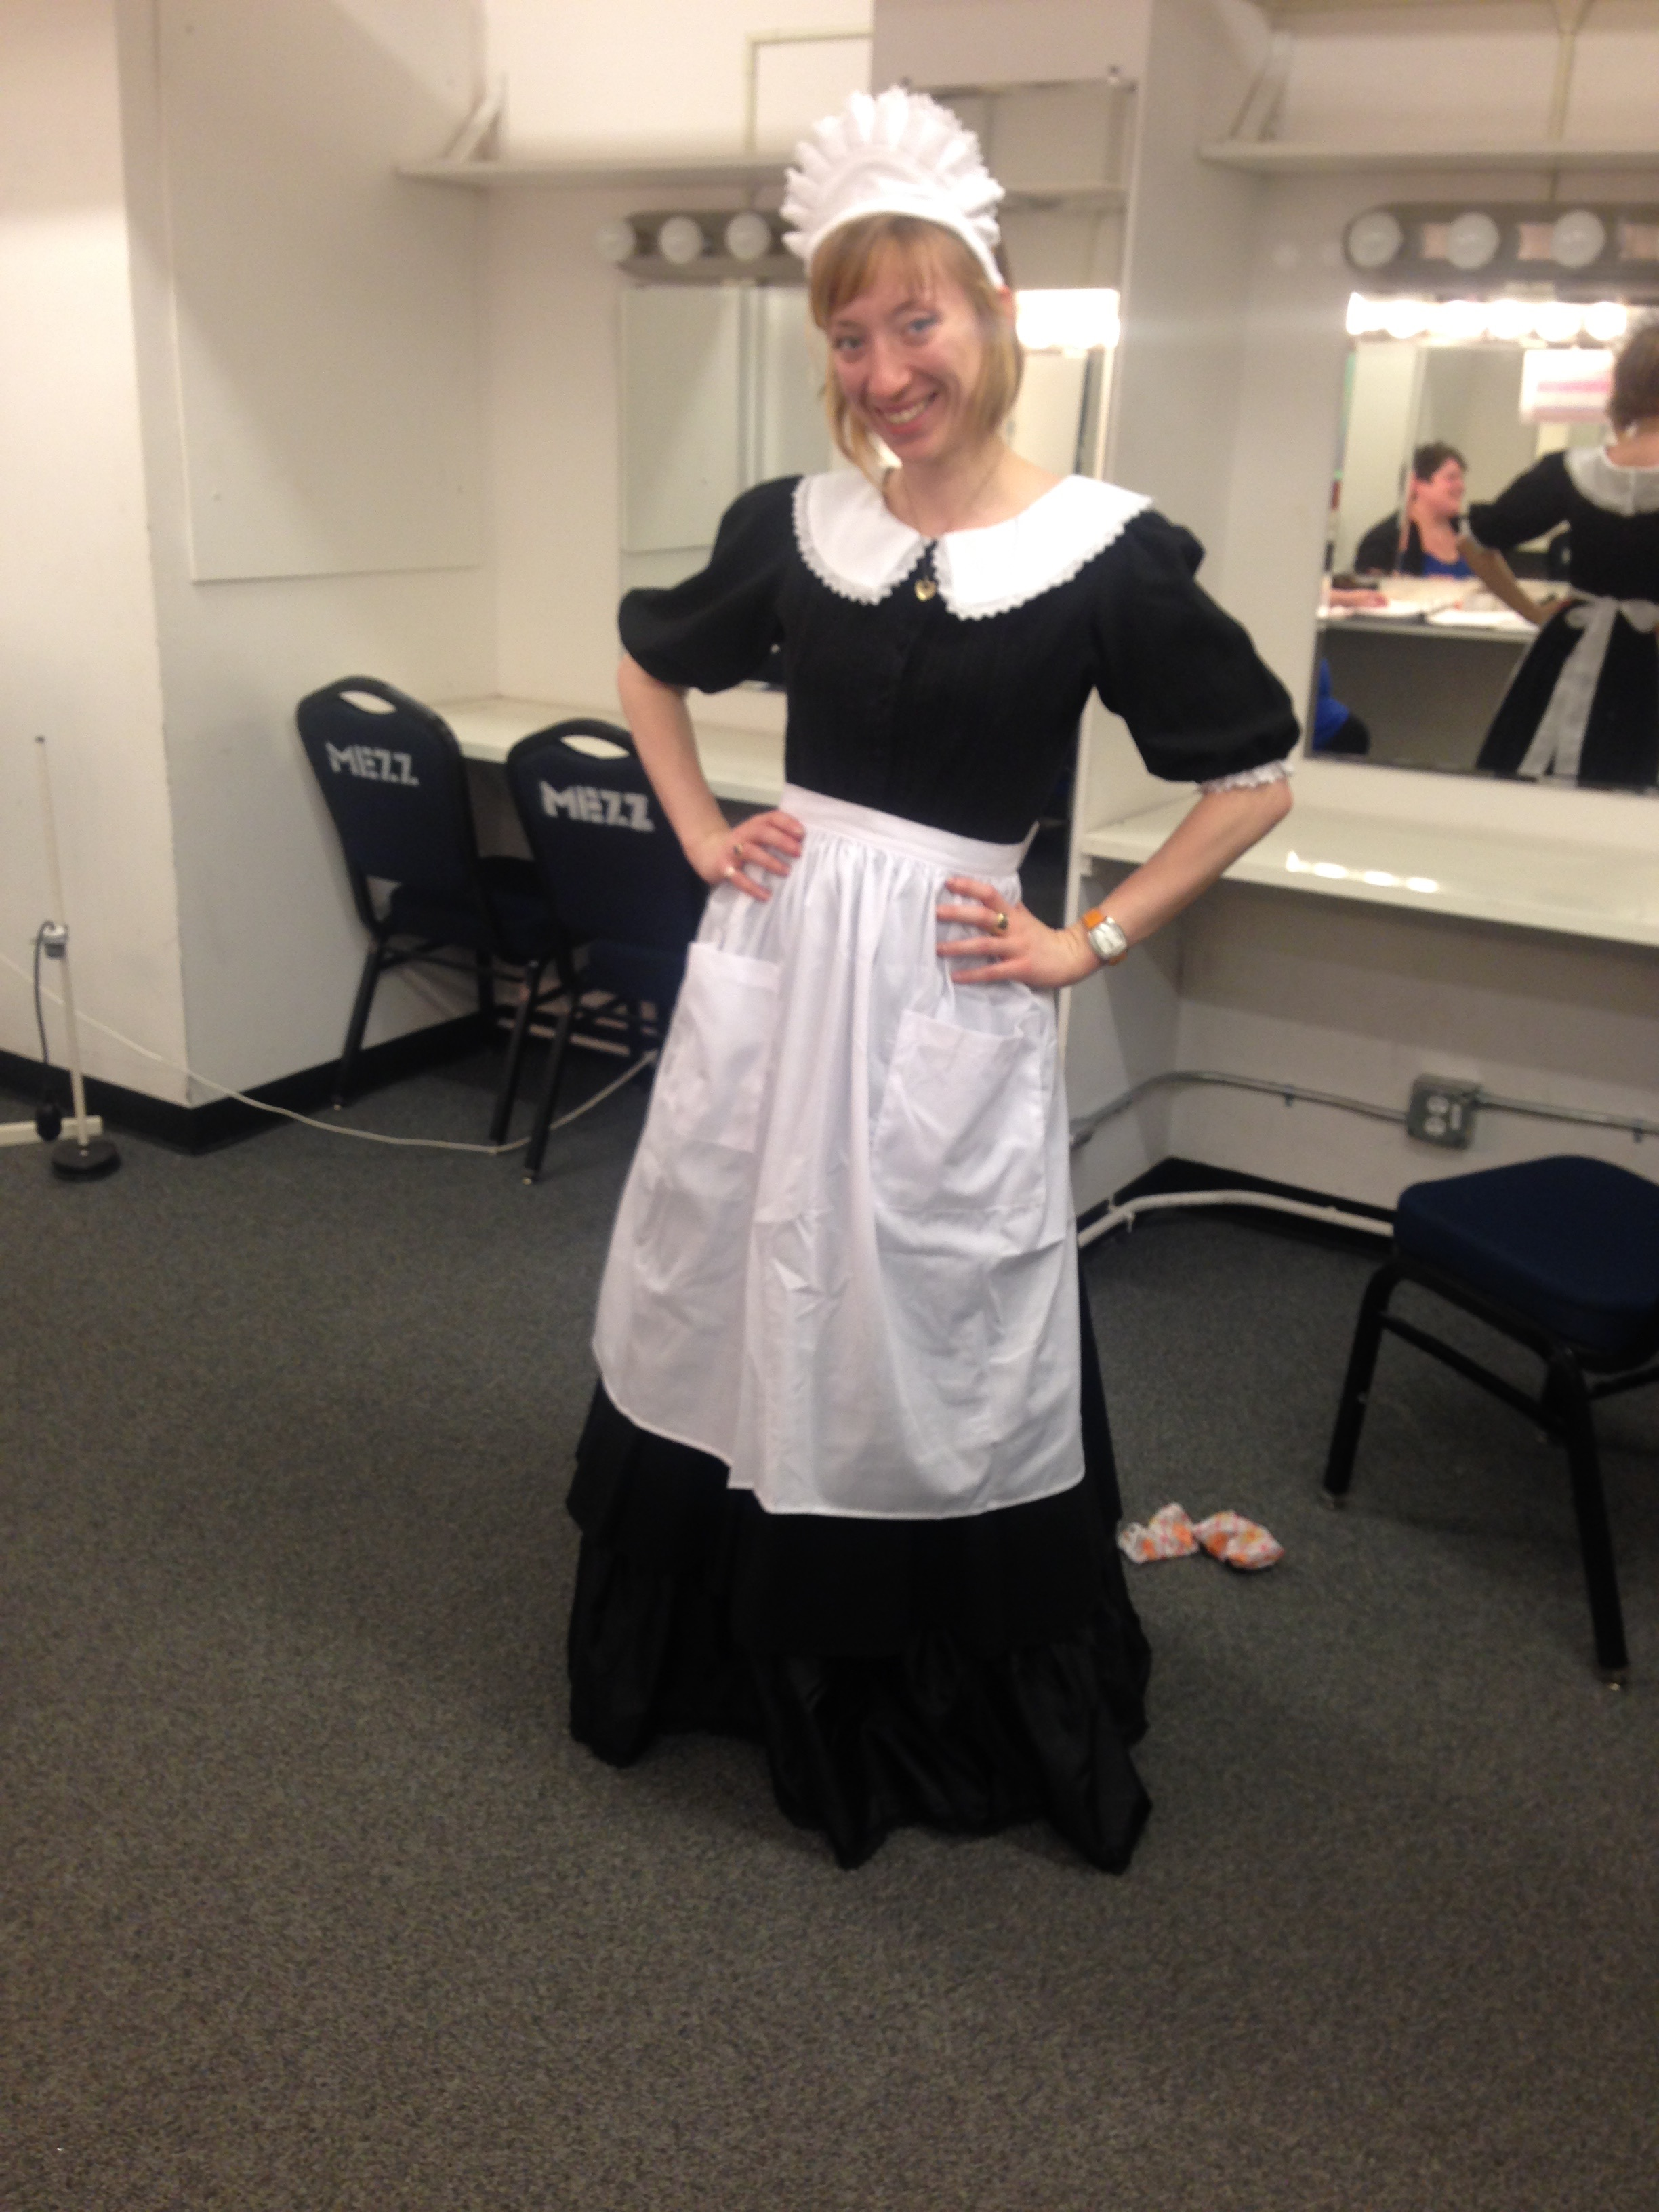 costume fitting for Odyssey Opera